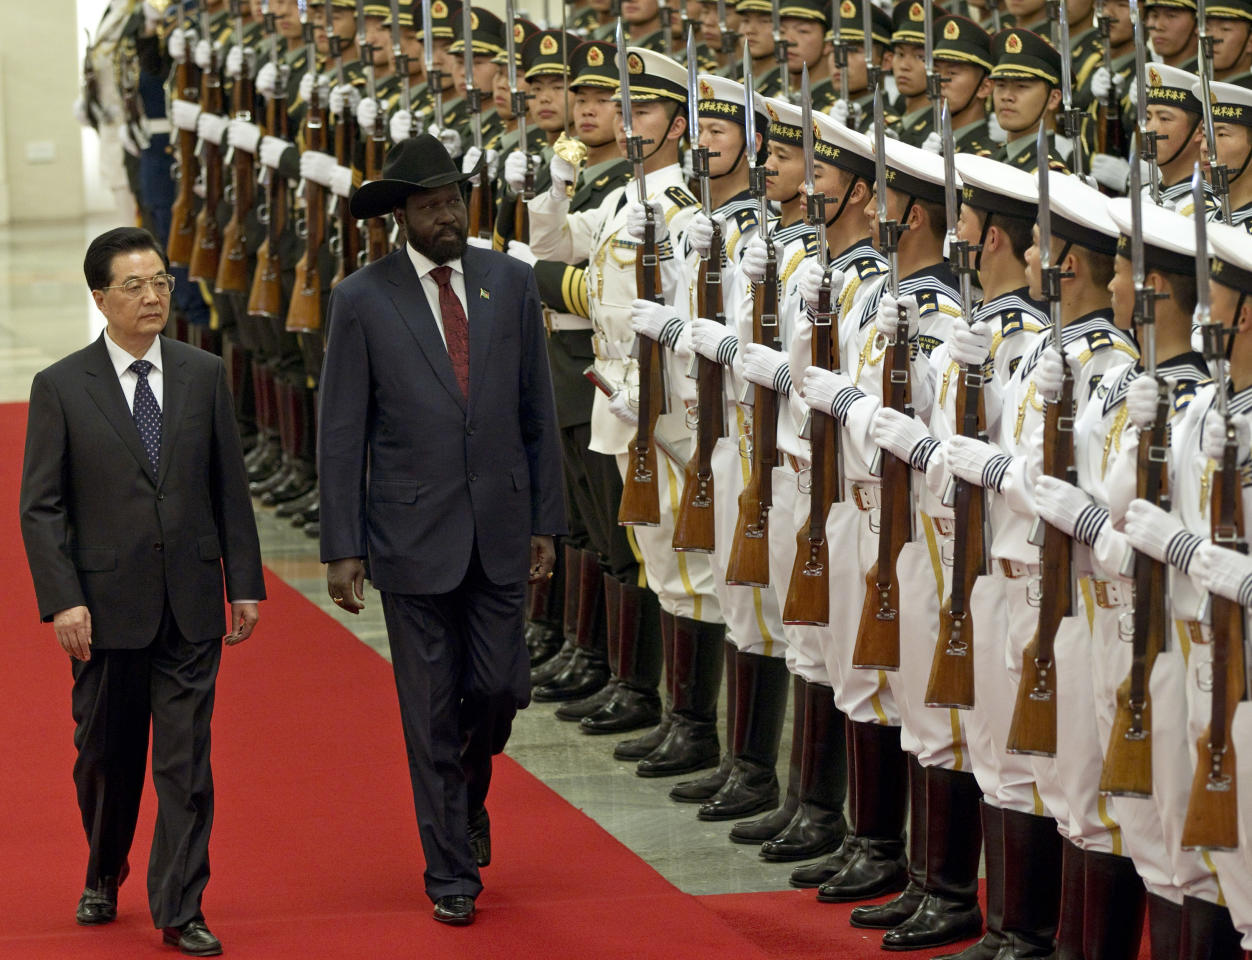 South Sudan's President Salva Kiir, right, reviews honor guard with Chinese President Hu Jintao, left, during a welcoming ceremony at the Great Hall of the People in Beijing, China, Tuesday, April 24, 2012. (AP Photo/Alexander F. Yuan)